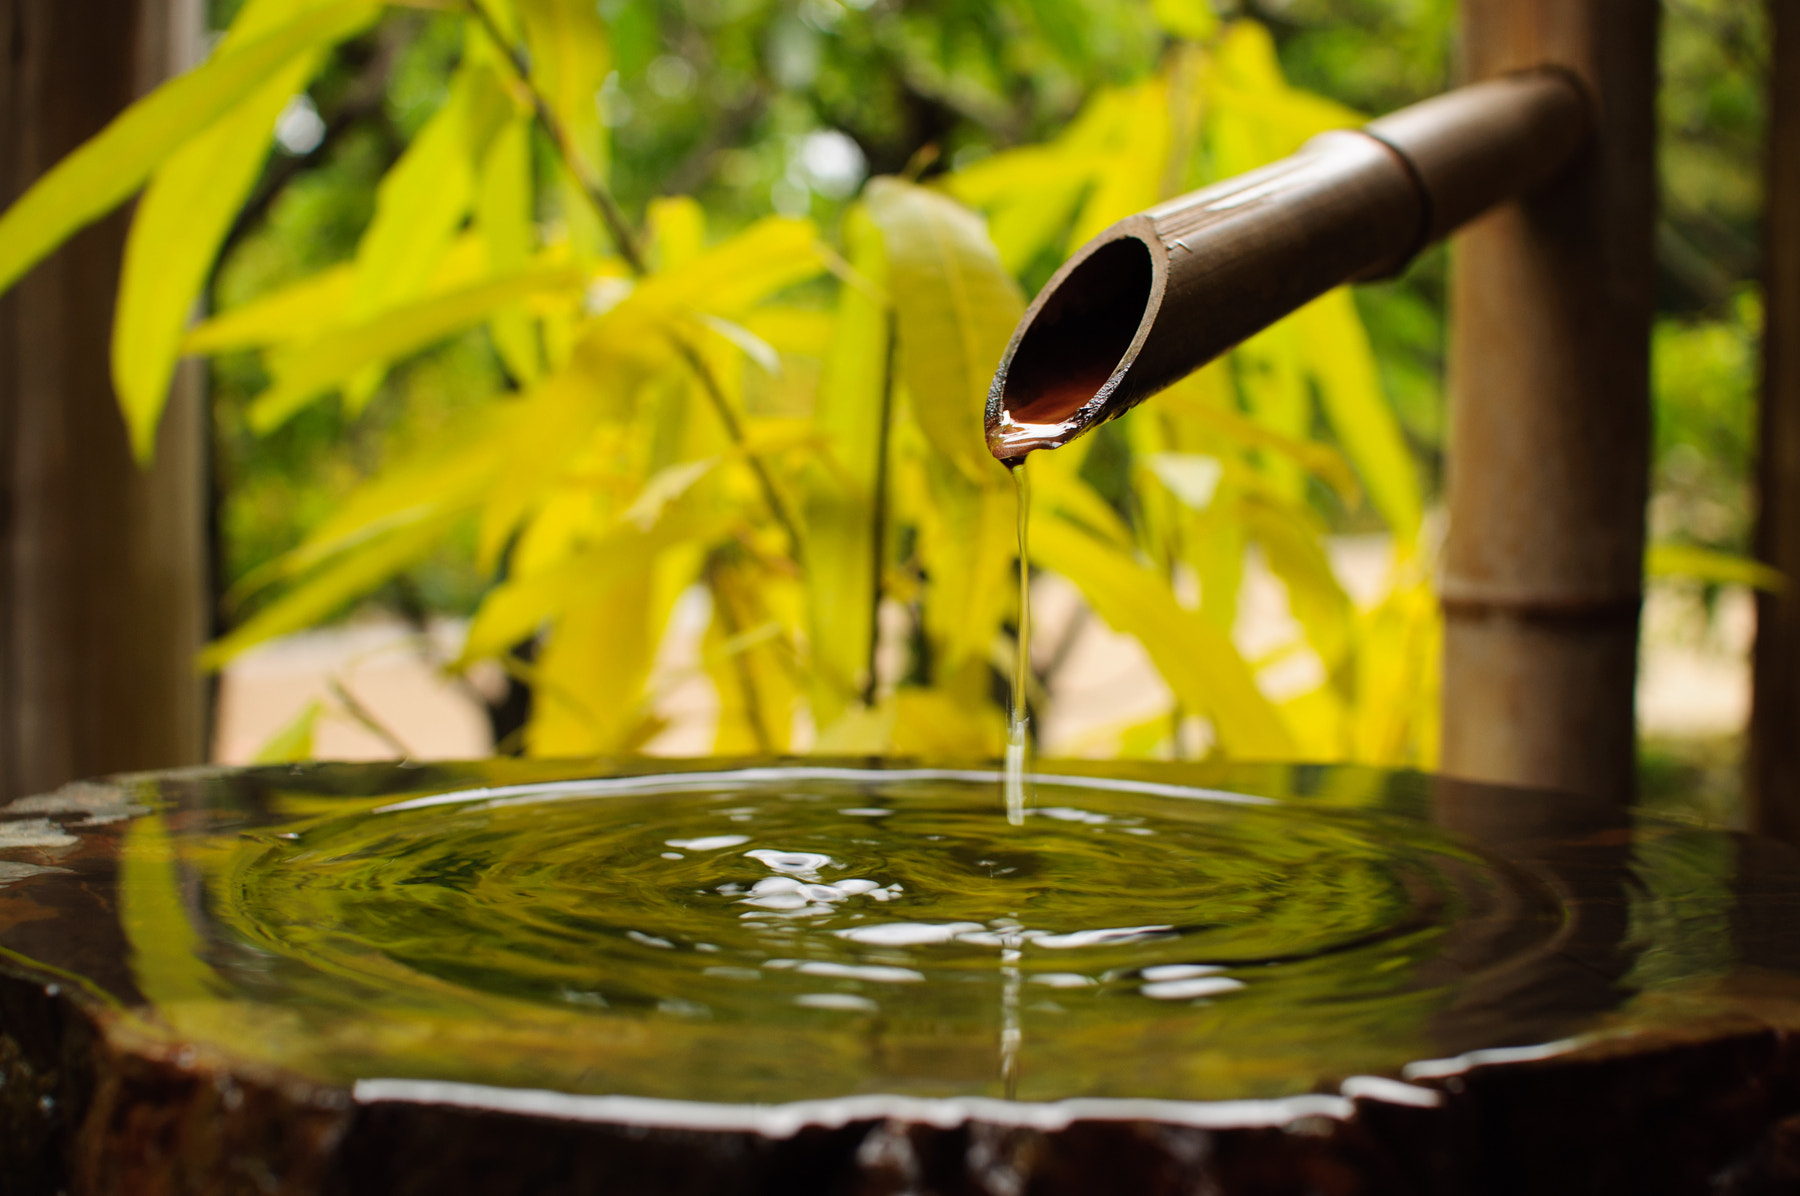 Photograph Bamboo water service by Naoyoshi Tamura on 500px